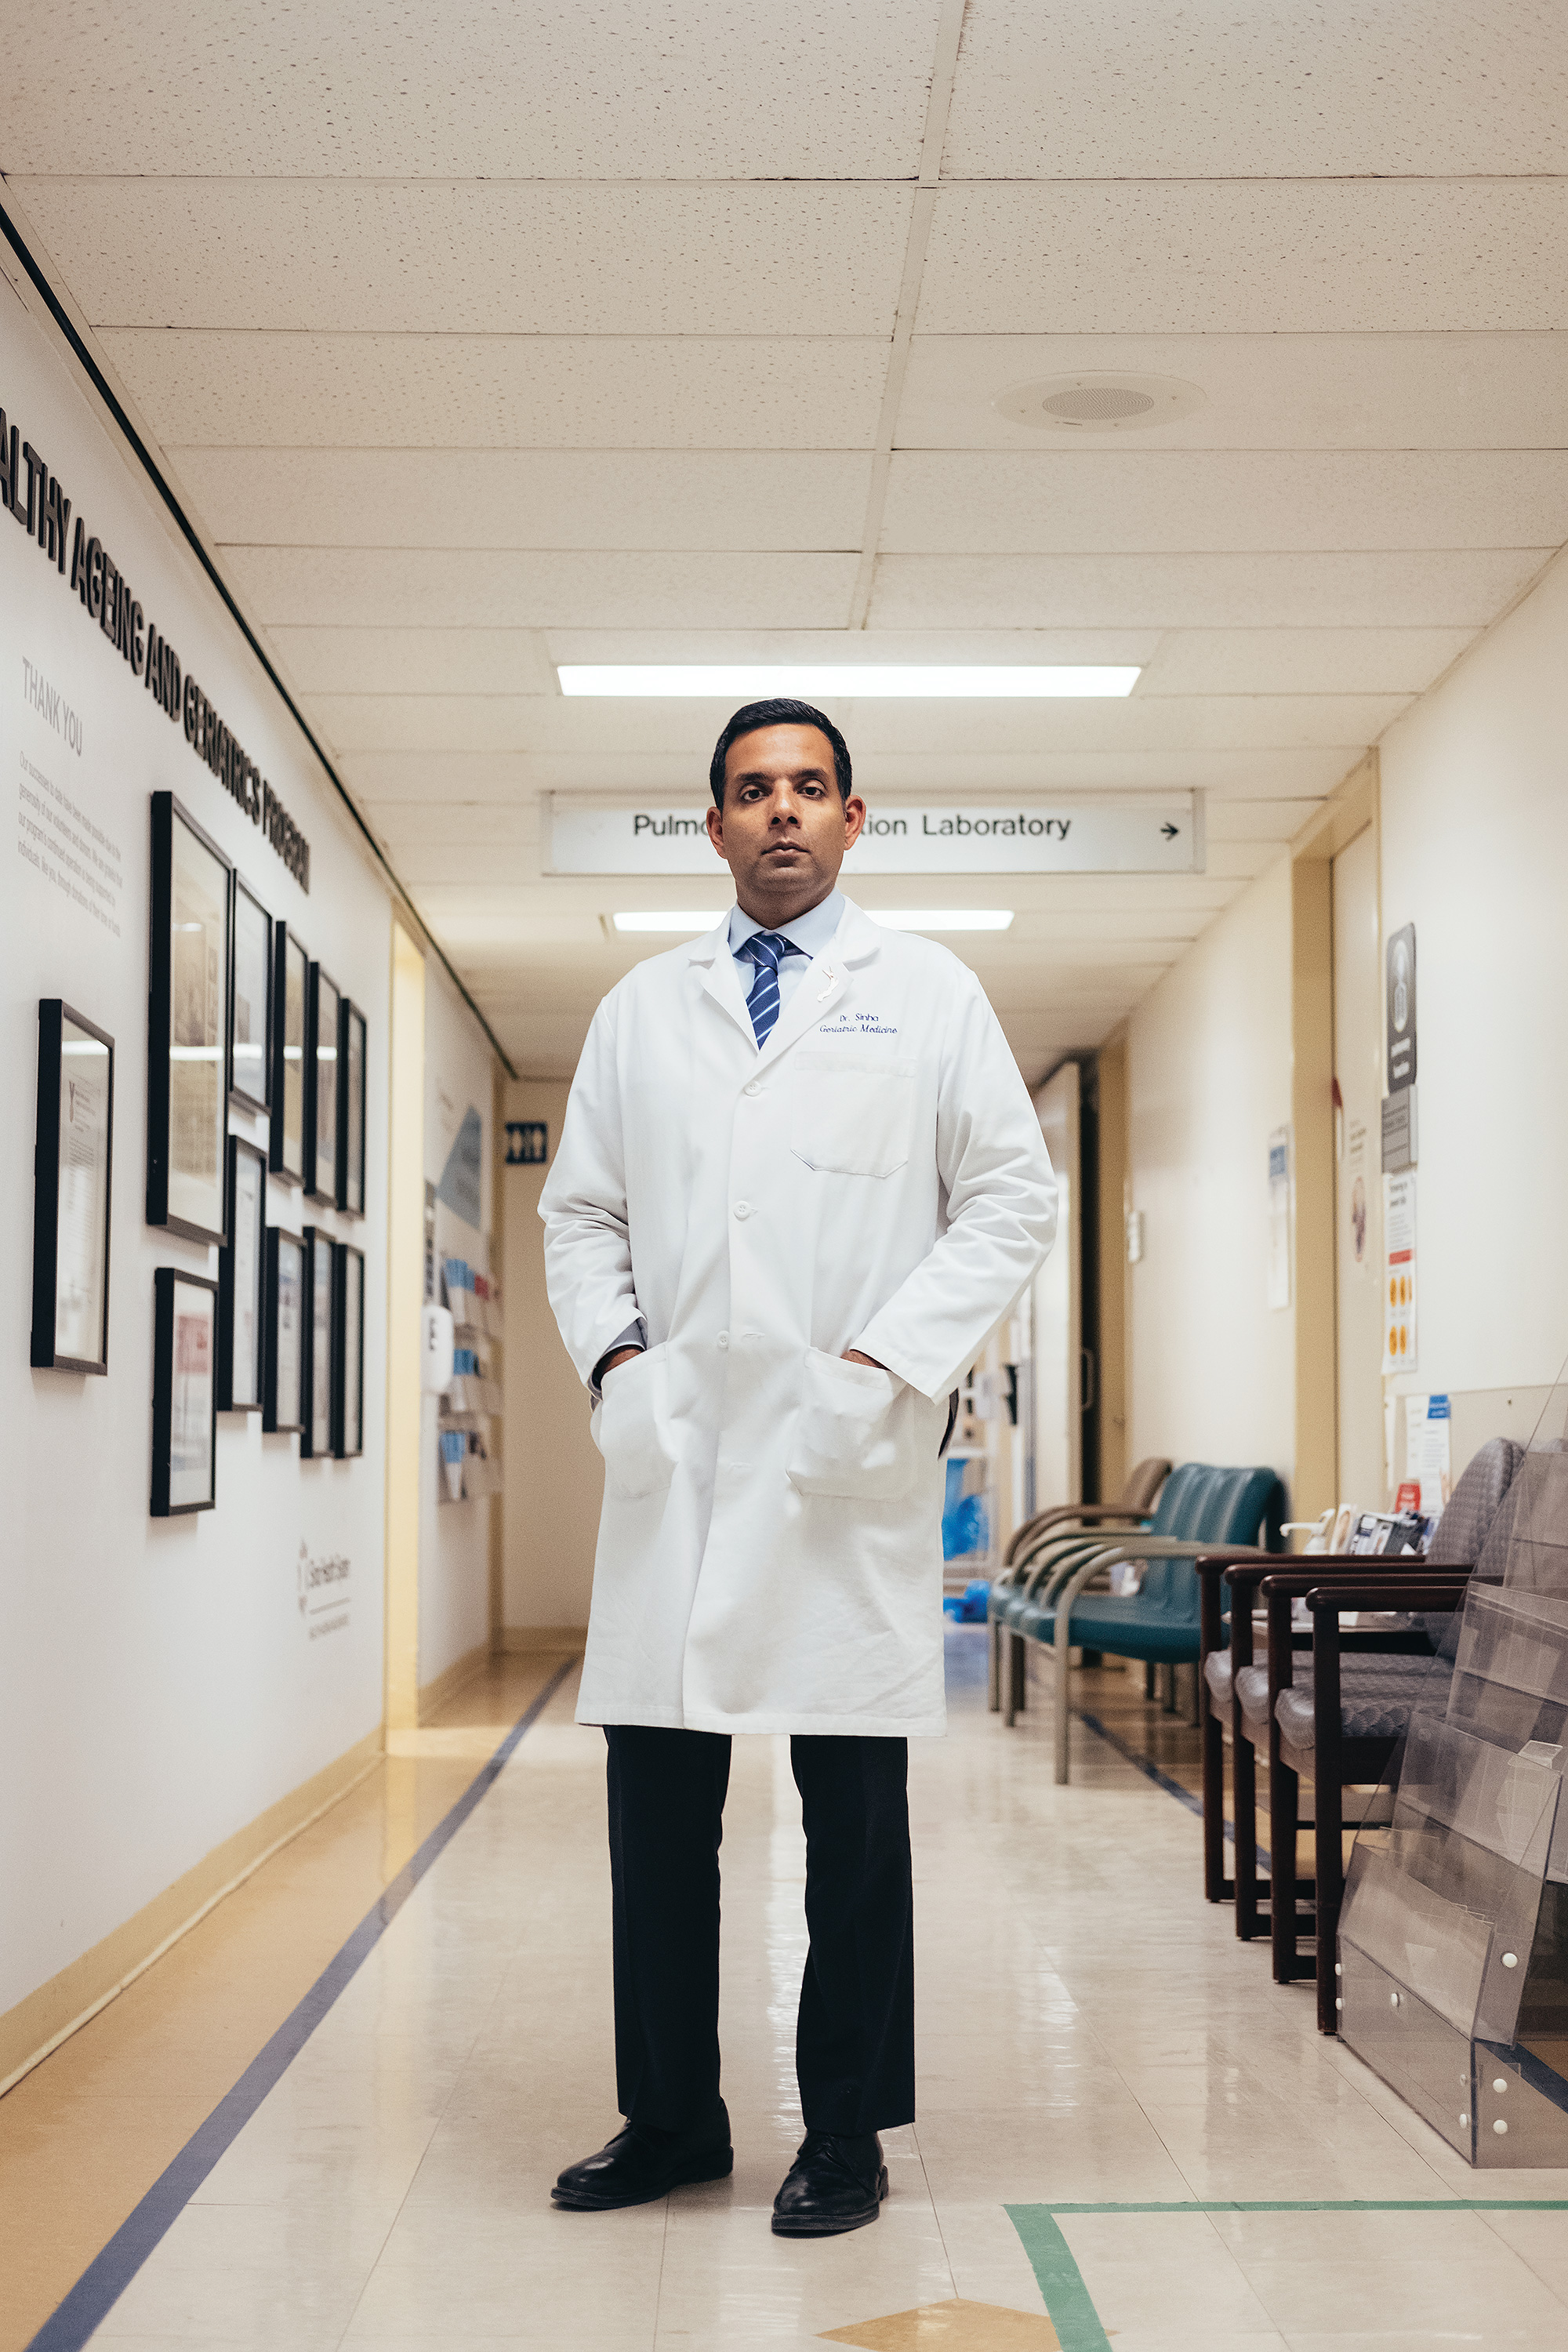 Dr. Samir Sinha is the director of geriatrics at Sinai Health System and the University Health Network in Toronto. Photo By Reynard Li.